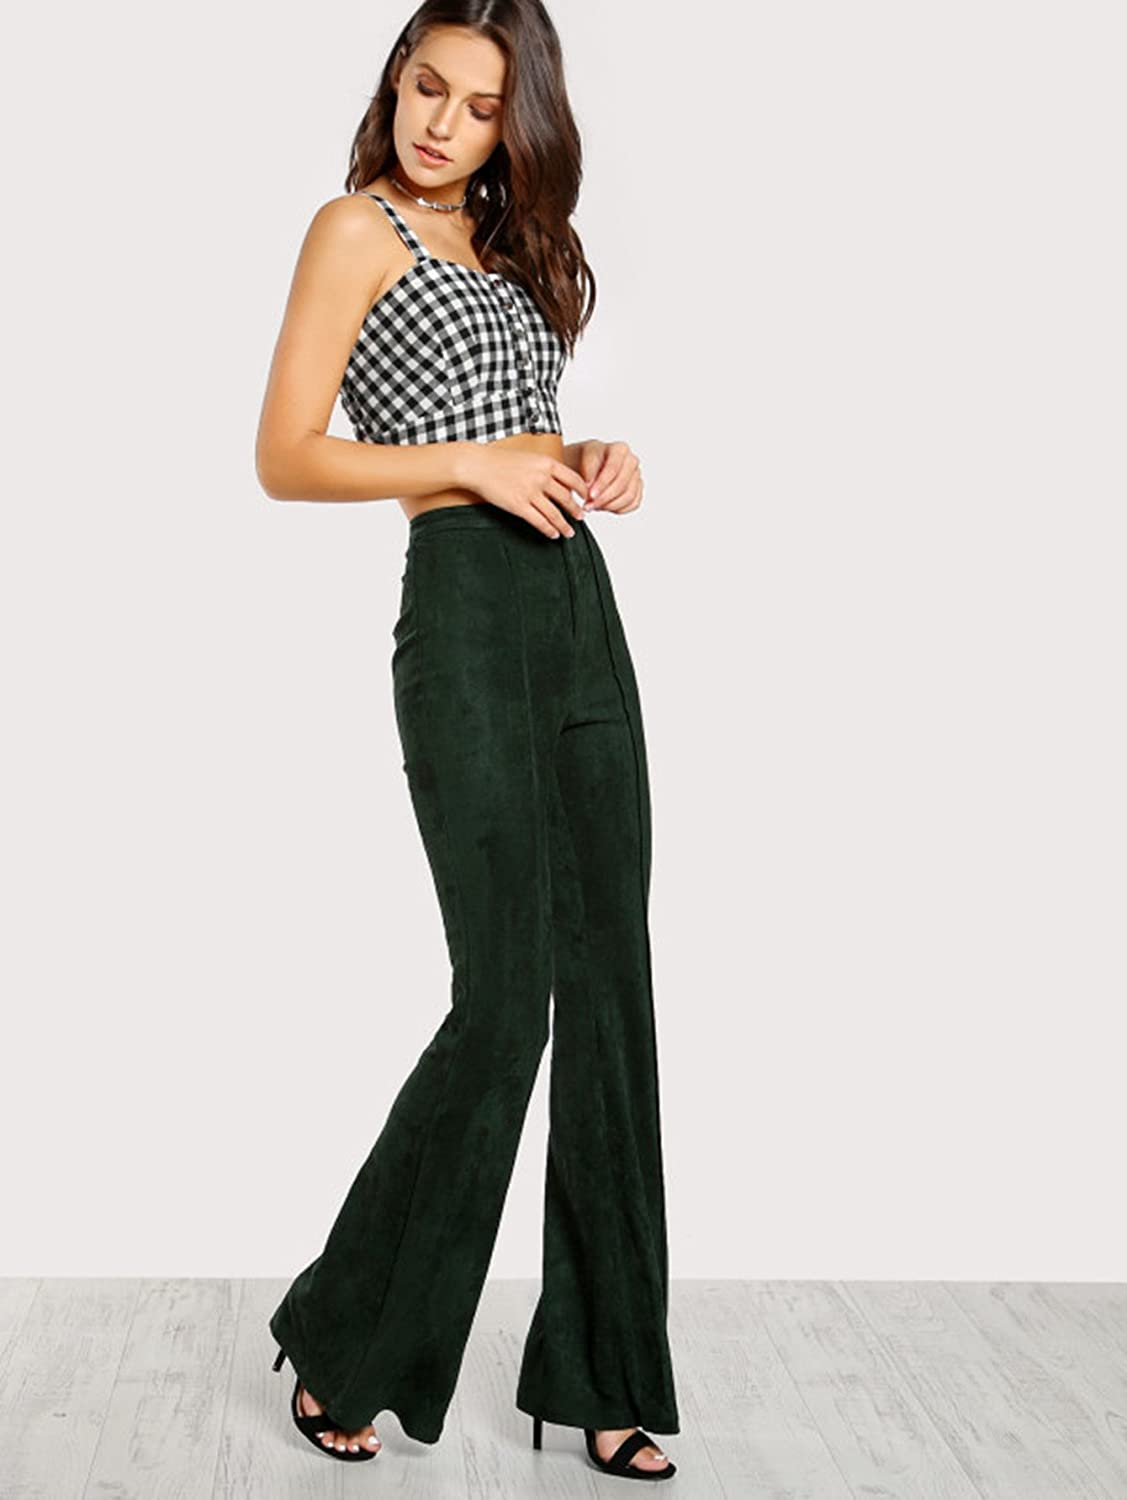 6c532d3b003201 MAKEMECHIC Women's Solid Flare Pants Stretchy Bell Bottom Trousers at  Amazon Women's Clothing store: